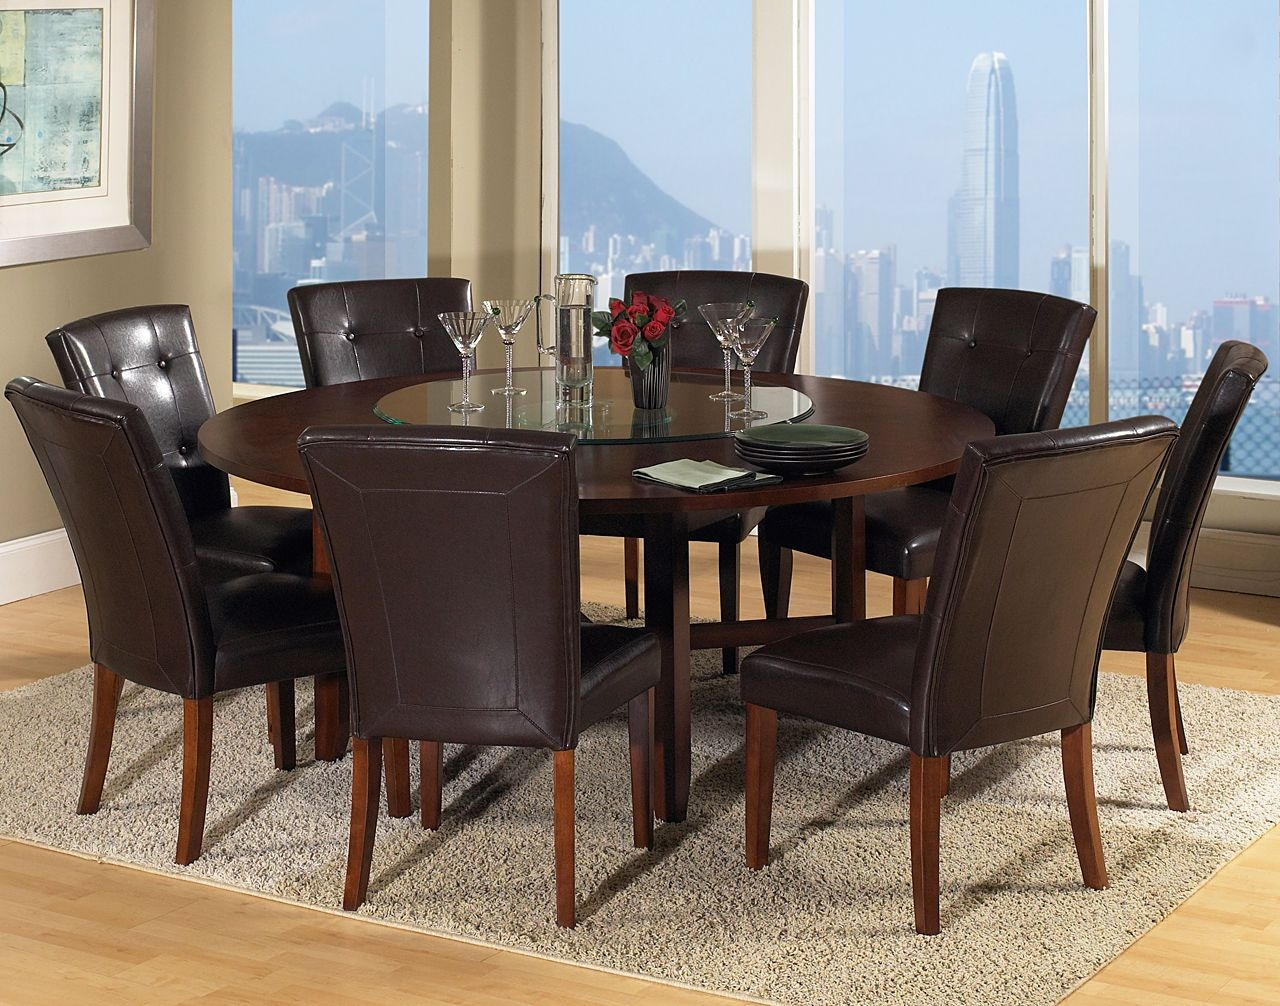 Swell Round Dining Table For 8 People Ideas On Foter Interior Design Ideas Philsoteloinfo